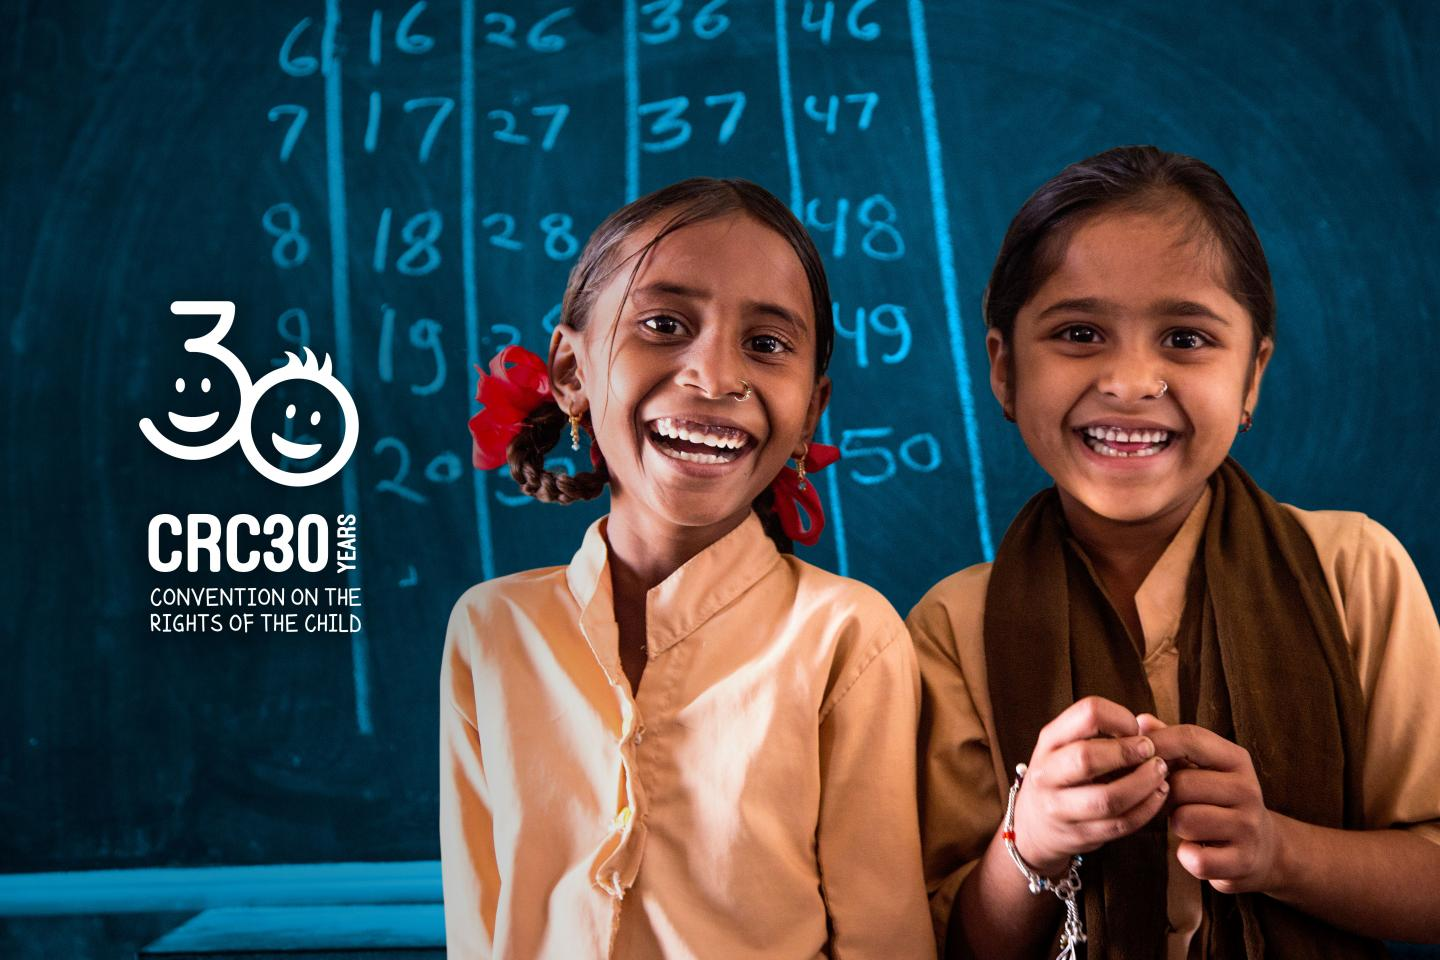 Convention on the Rights of the Child | UNICEF